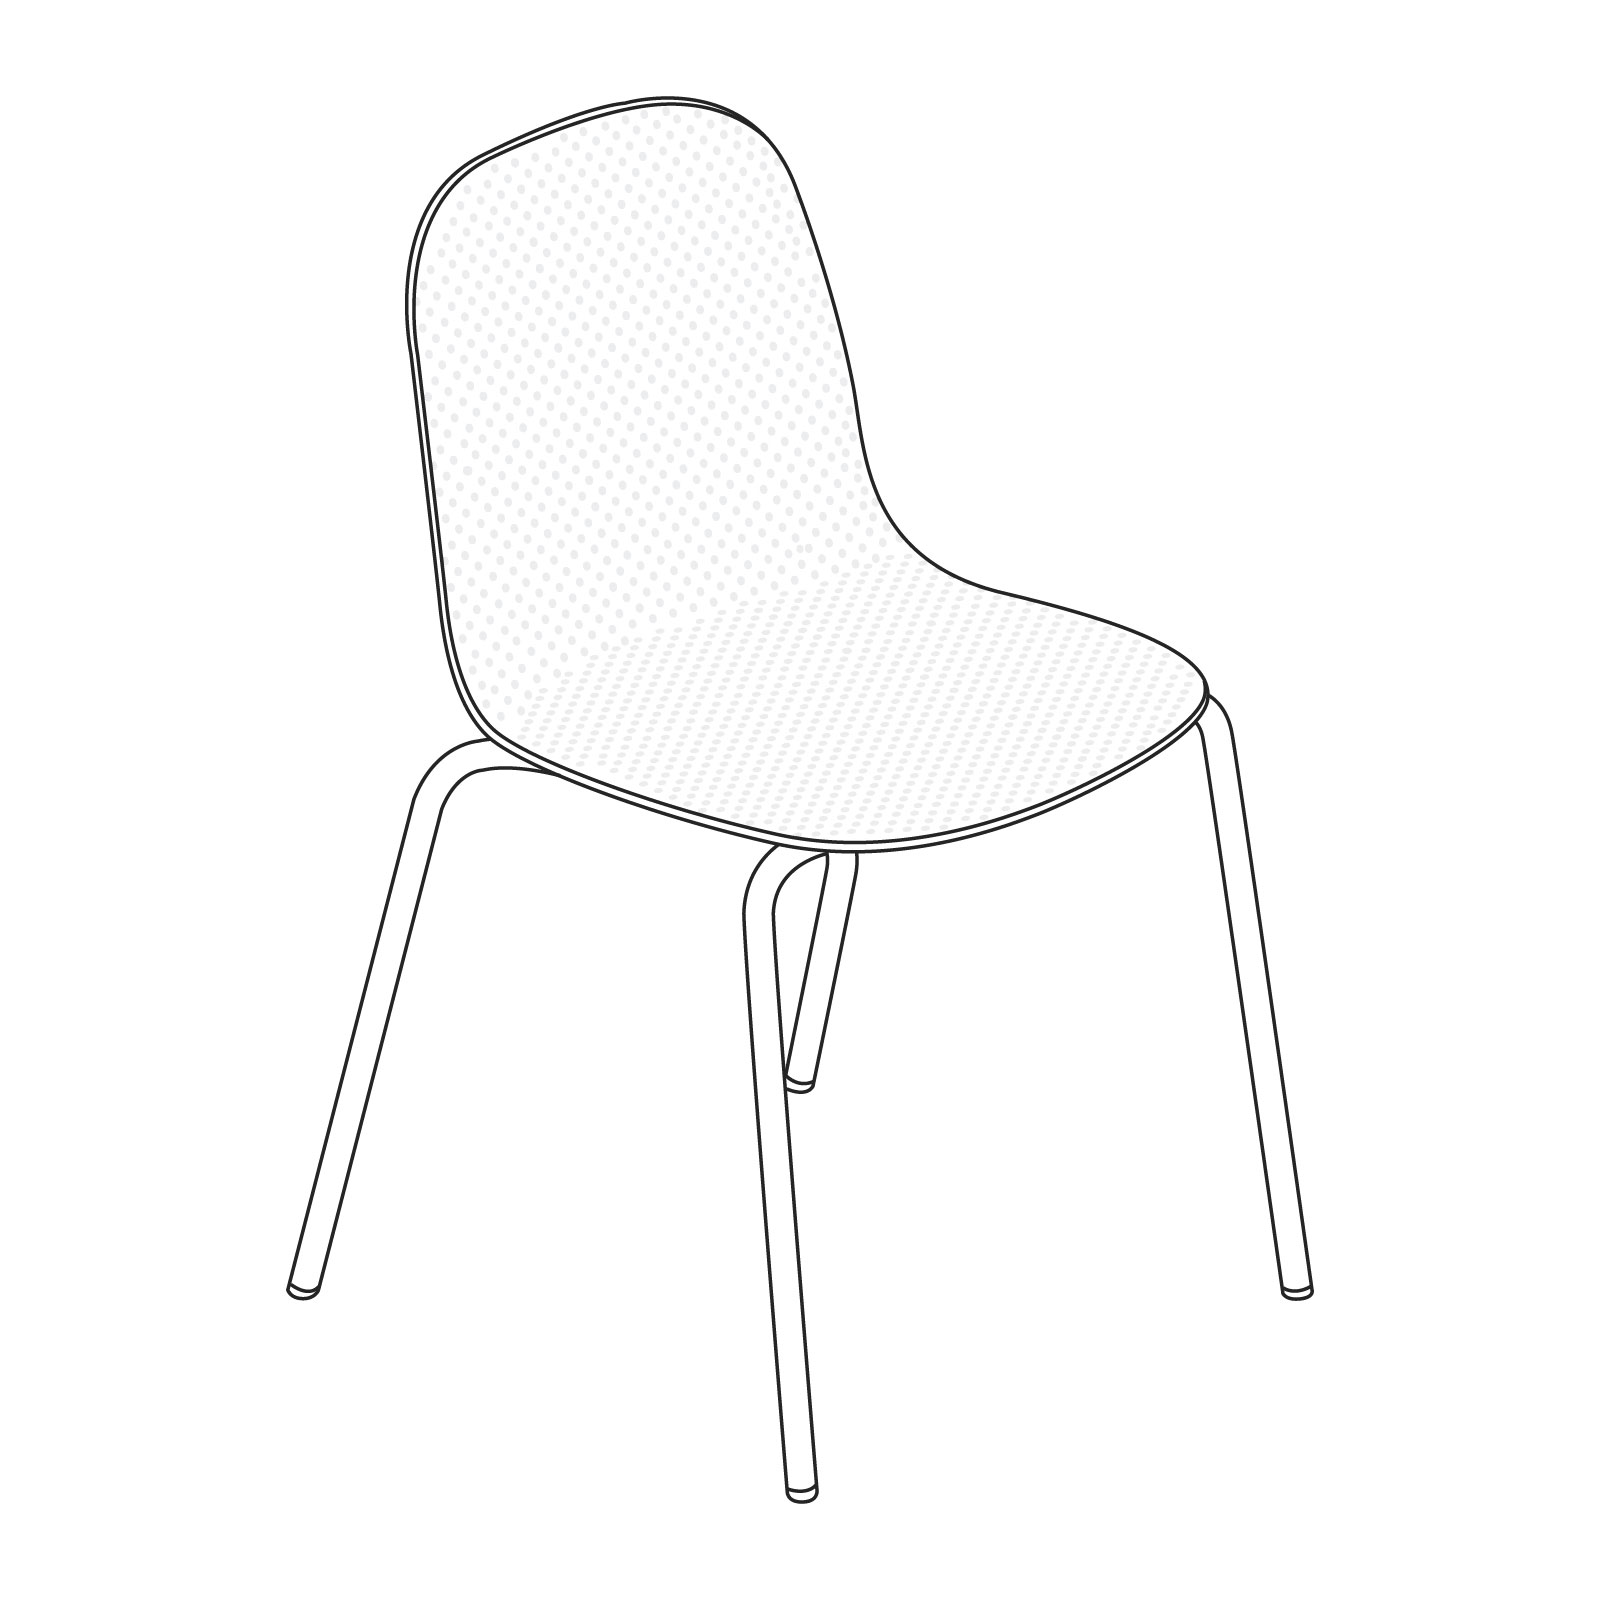 A line drawing of 13Eighty Chair–Armless.